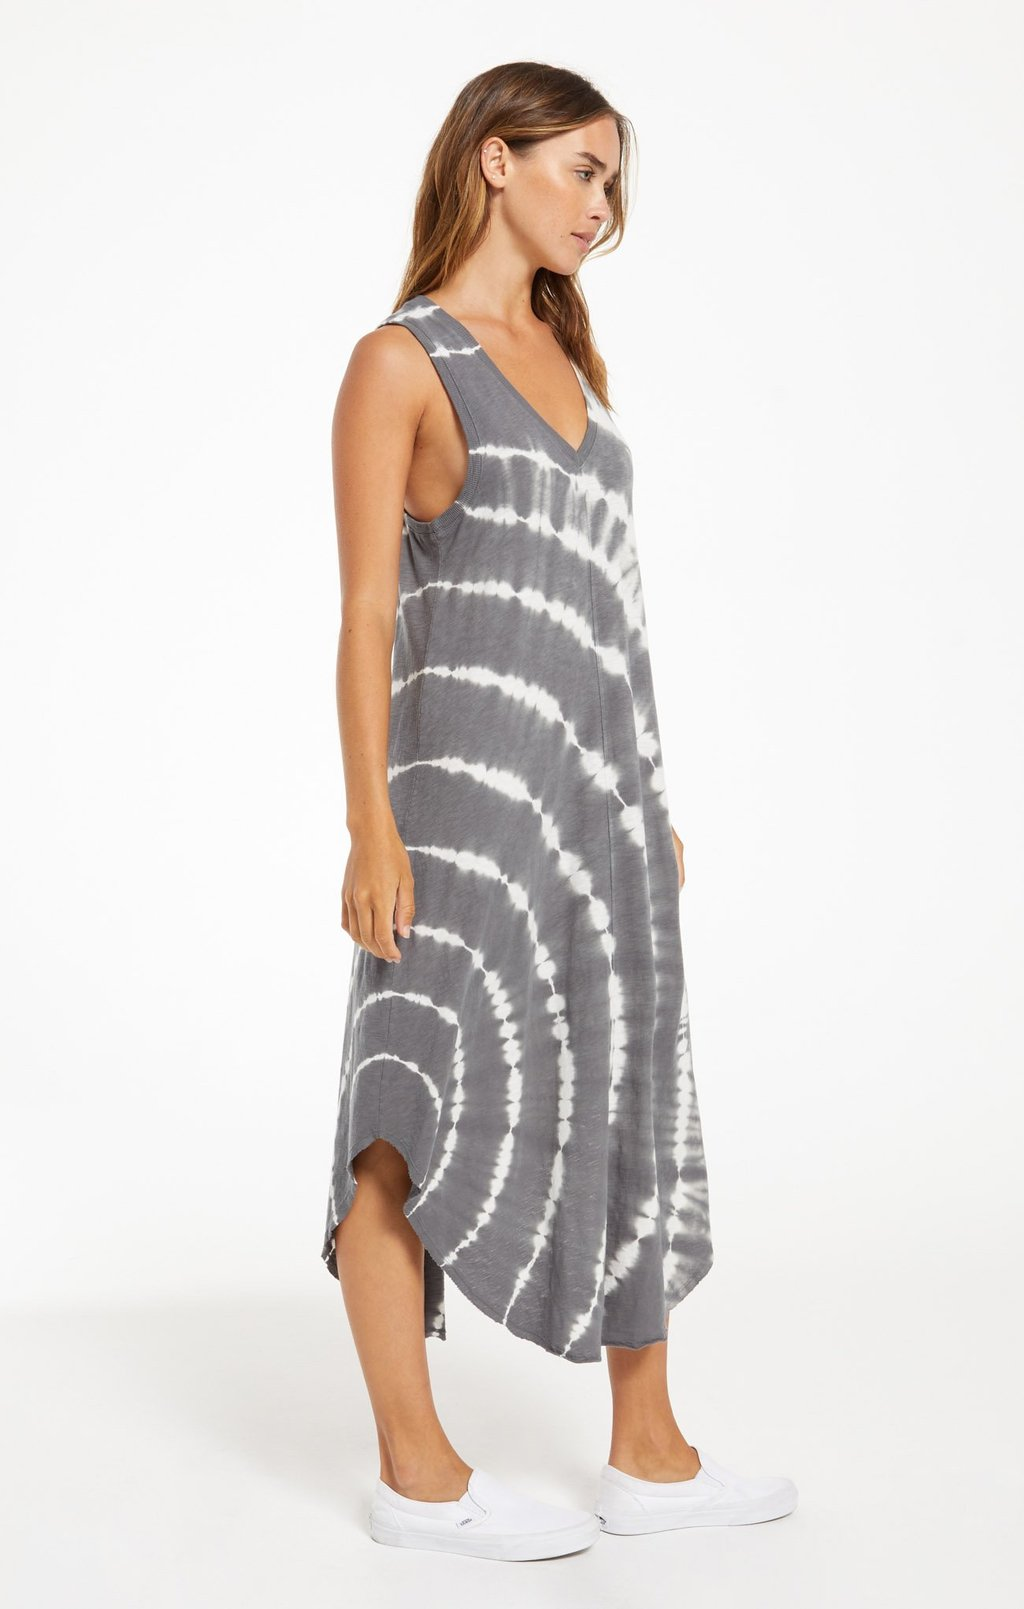 The Reverie Tie Dye Dress